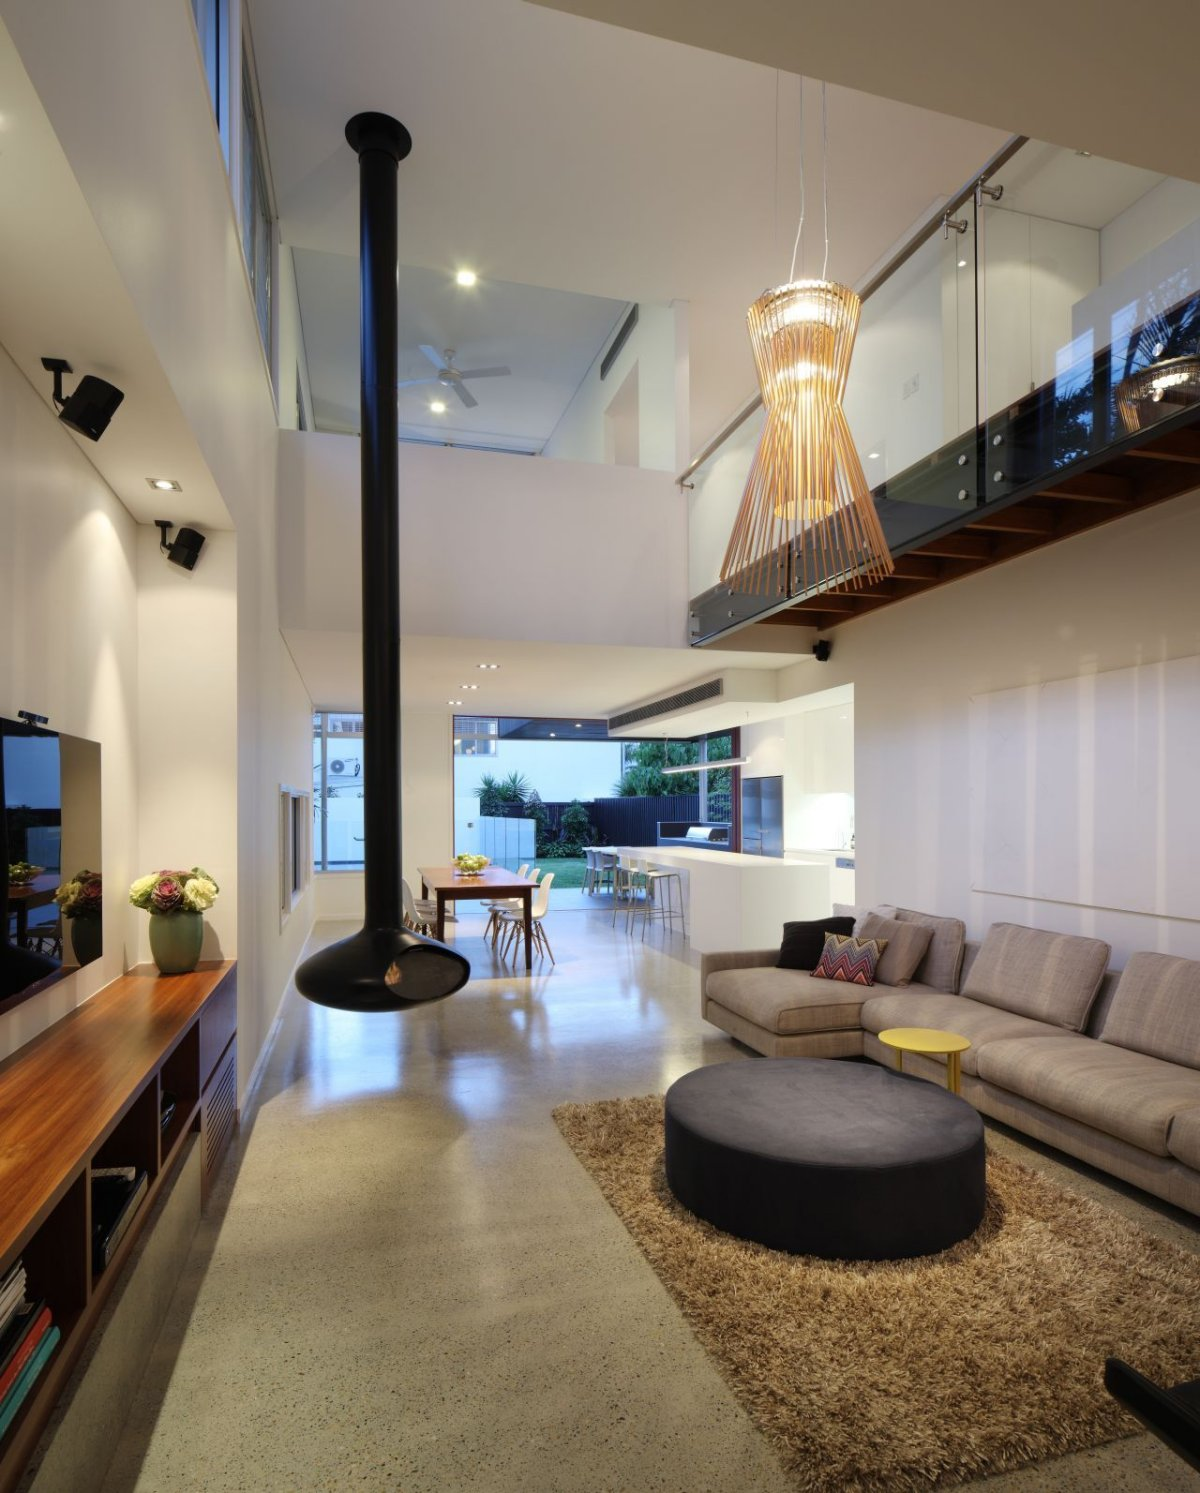 Fireplace, Sofa, Rug, Lighting, Contemporary Family Home in Queensland, Australia